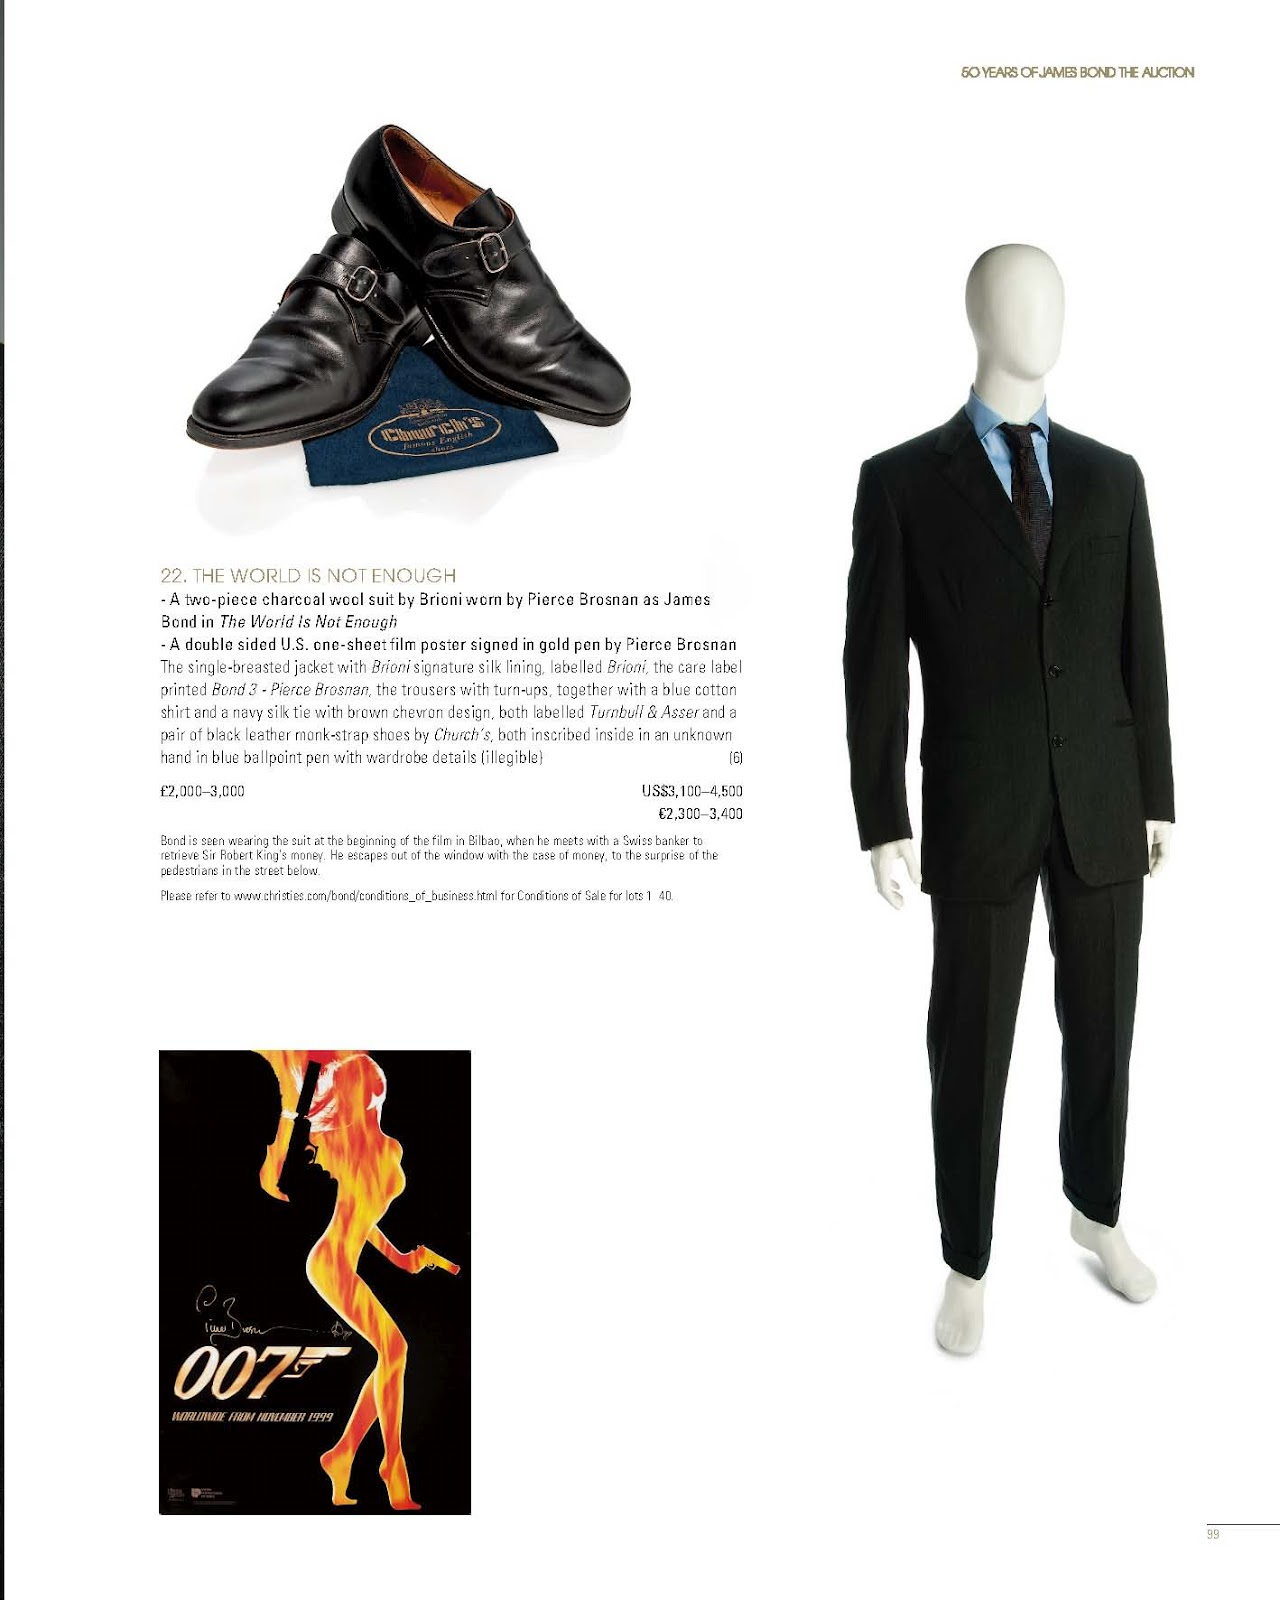 Luxury Life Design 50 Years of James Bond The Auction